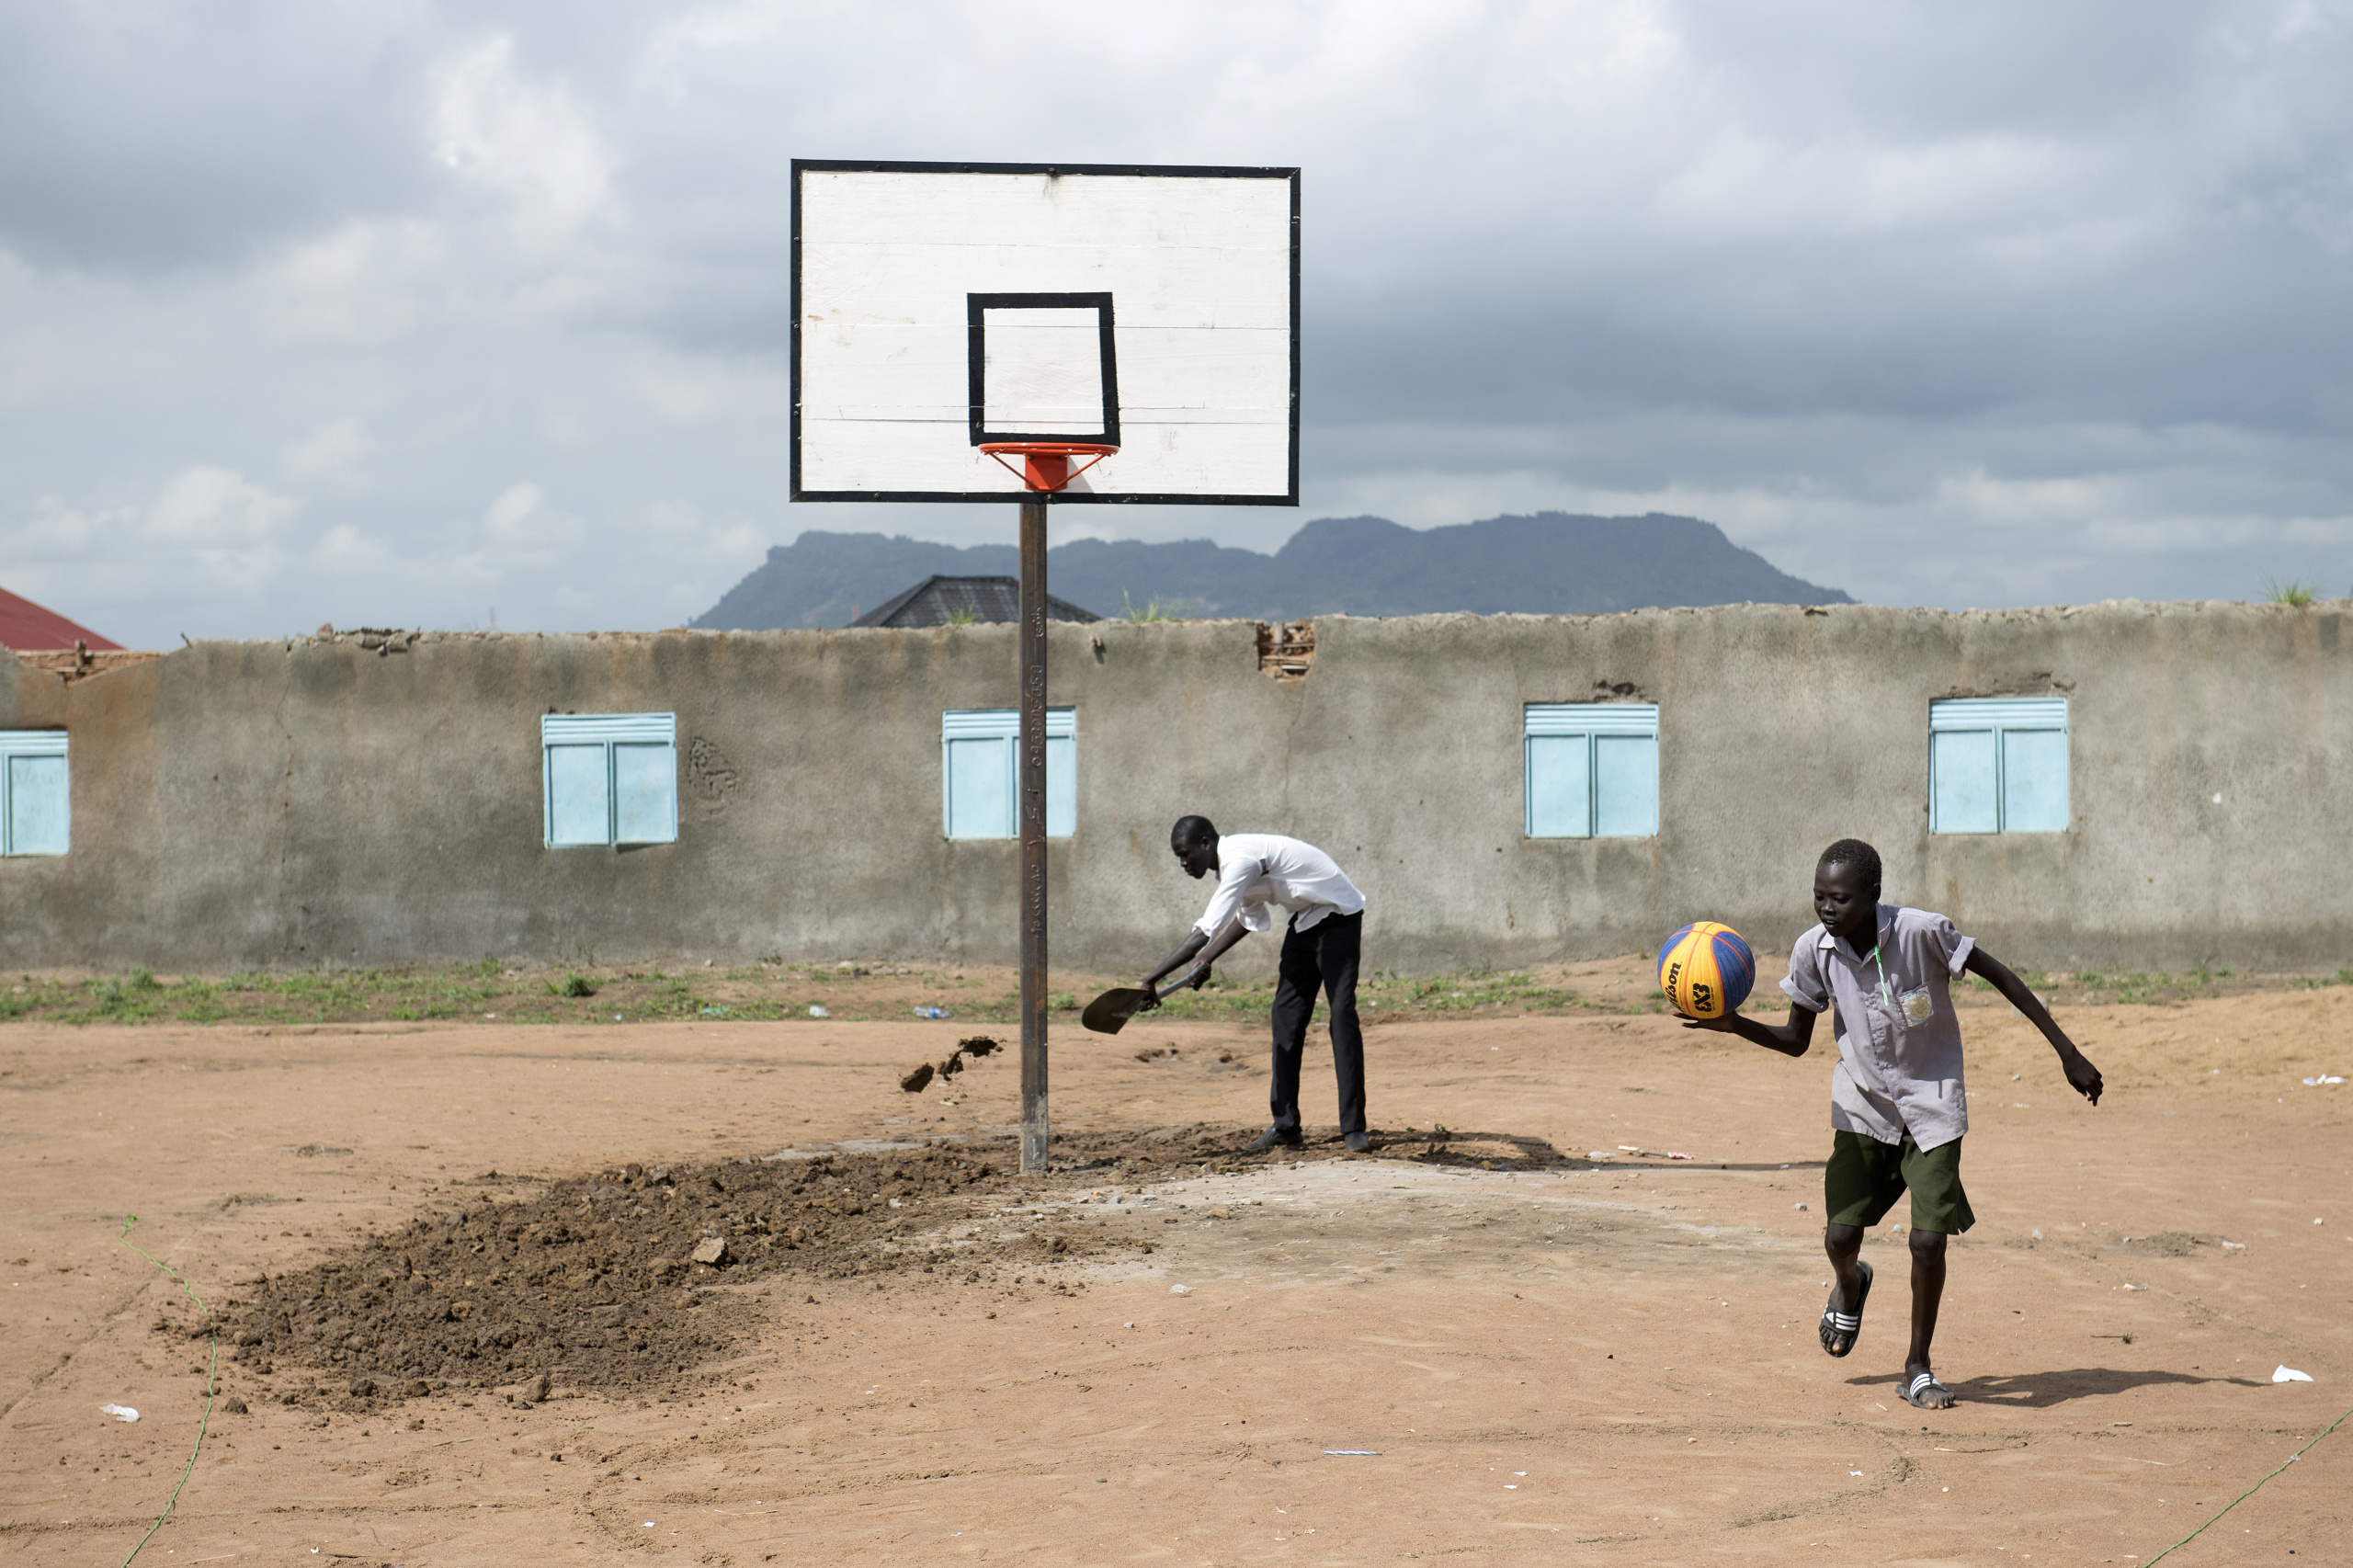 Juba, South Sudan. A man prepare the field for basketball tournament.  The International Basketball Foundation (IBF) was founded in 2008 by FIBA. This Foundation is the social, educational and legacy branch of FIBA ​​to address the role of sport and basketball especially in society. The role of the Foundation is to preserve and promote the values ​​of basketball and its cultural heritage.